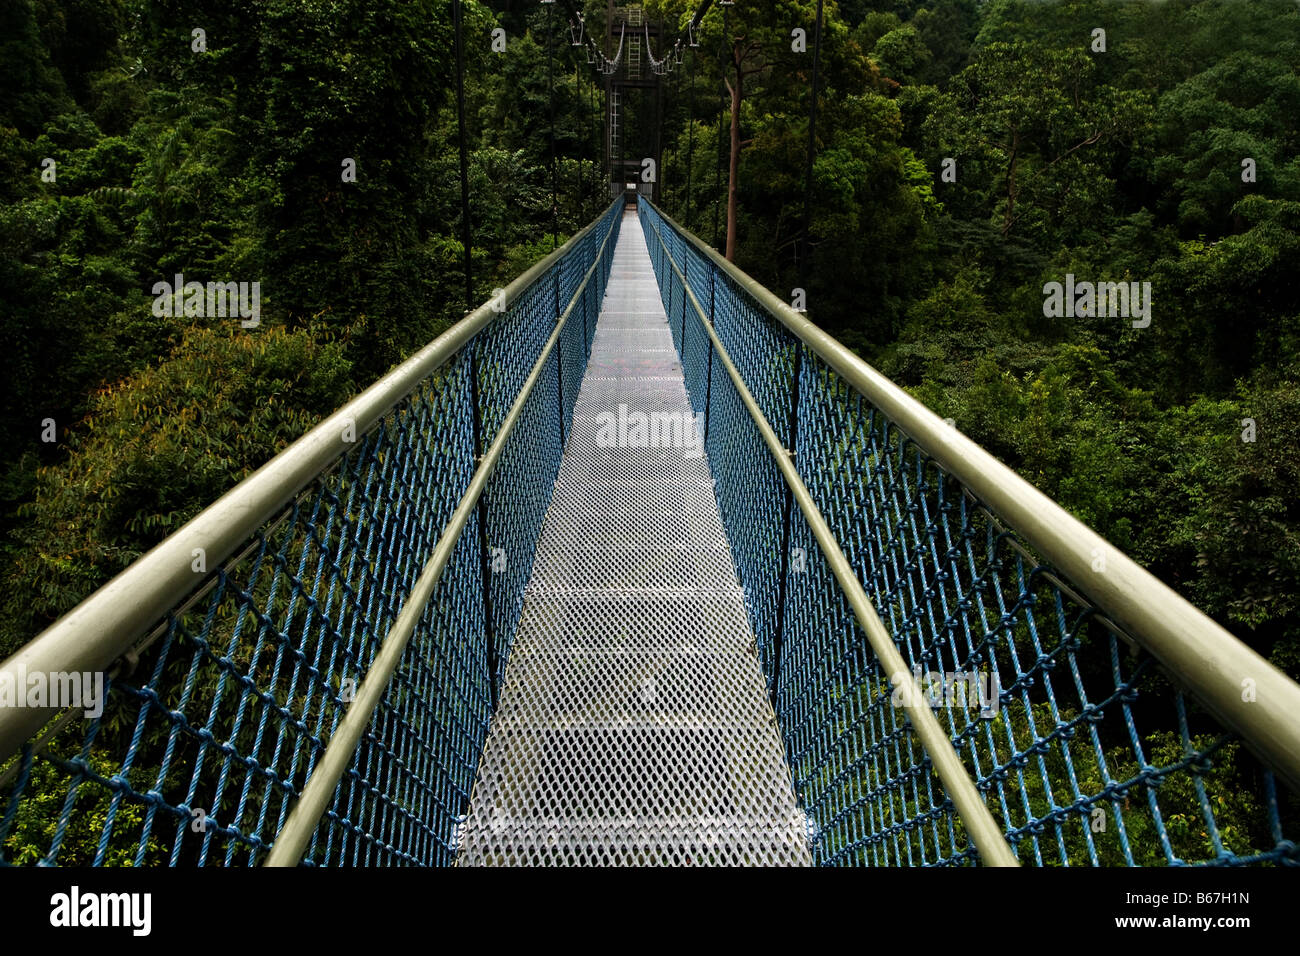 Tree top walk at MC Ritchie reservoir park in Singapore - Stock Image